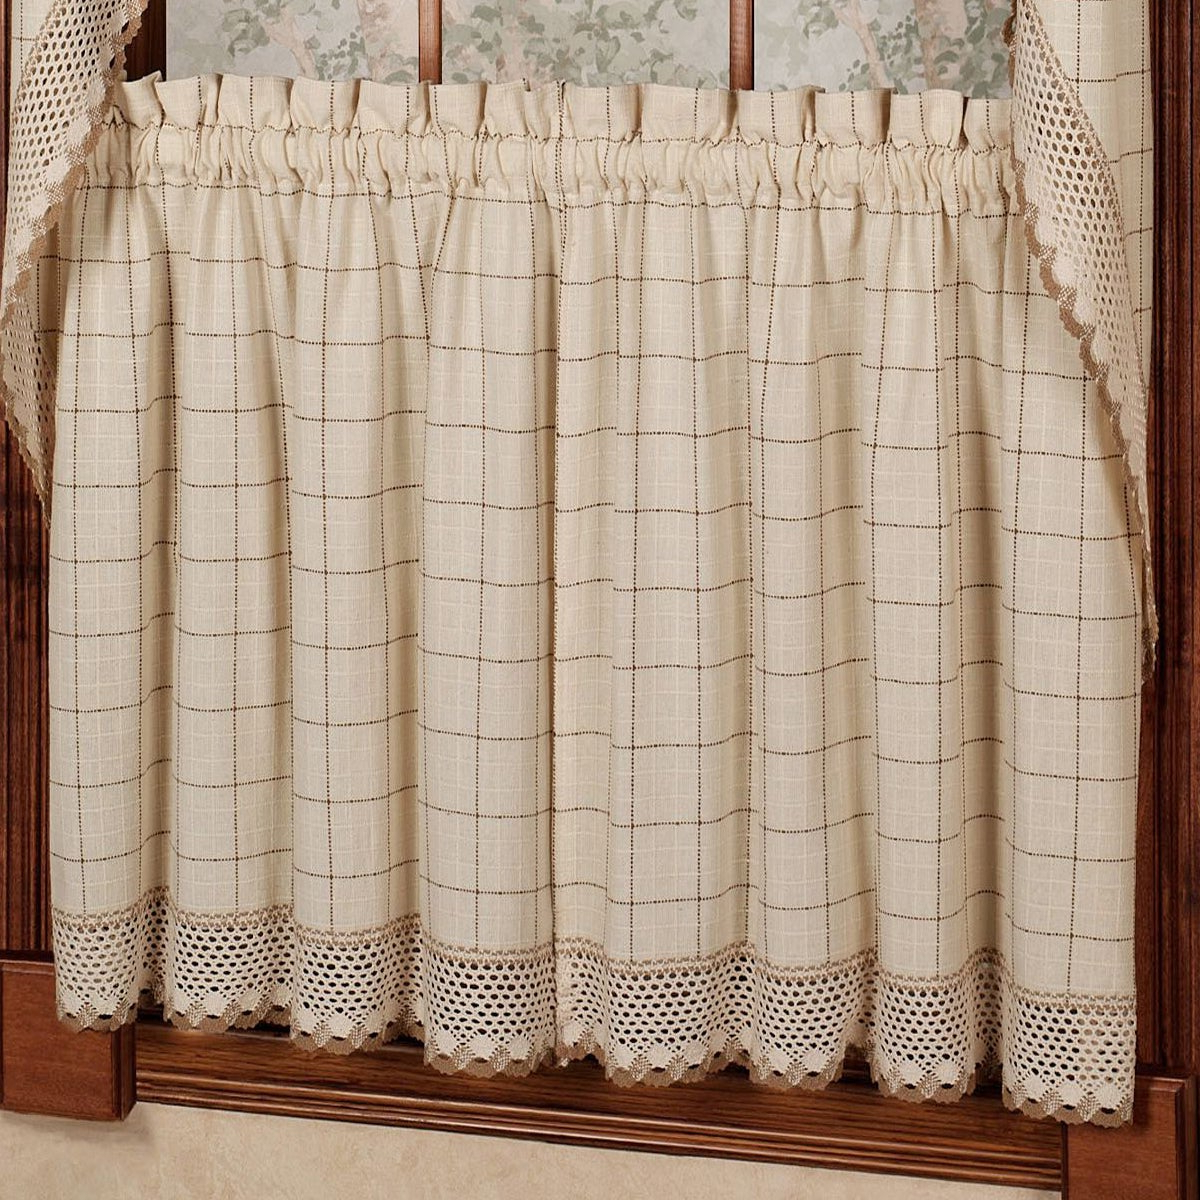 Trendy Cotton Classic Toast Window Pane Pattern And Crotchet Trim Tiers, Swags And Valance Options In Cotton Lace 5 Piece Window Tier And Swag Sets (View 11 of 20)